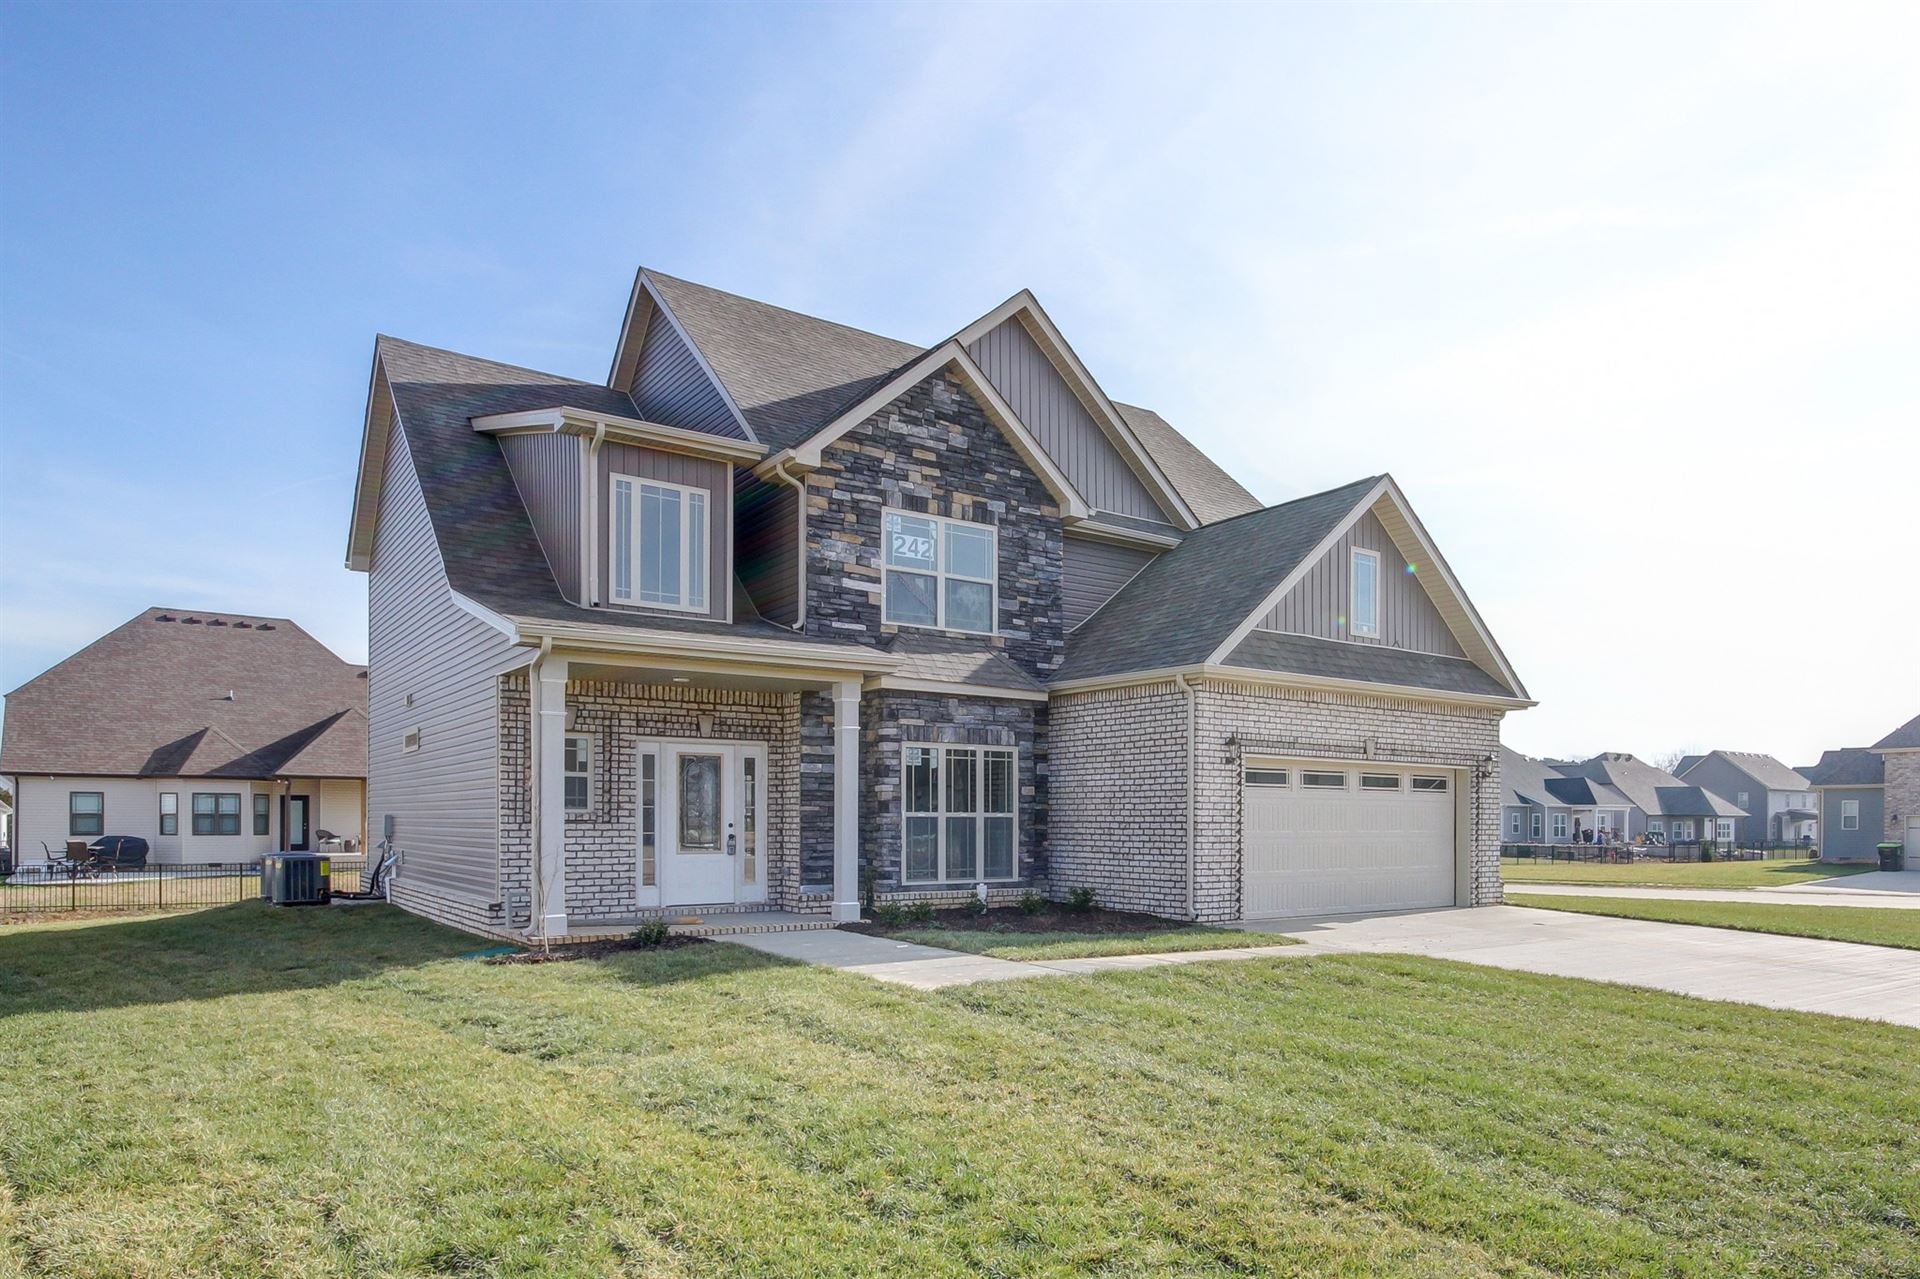 242 Easthaven, Clarksville, TN 37043 - MLS#: 2208868